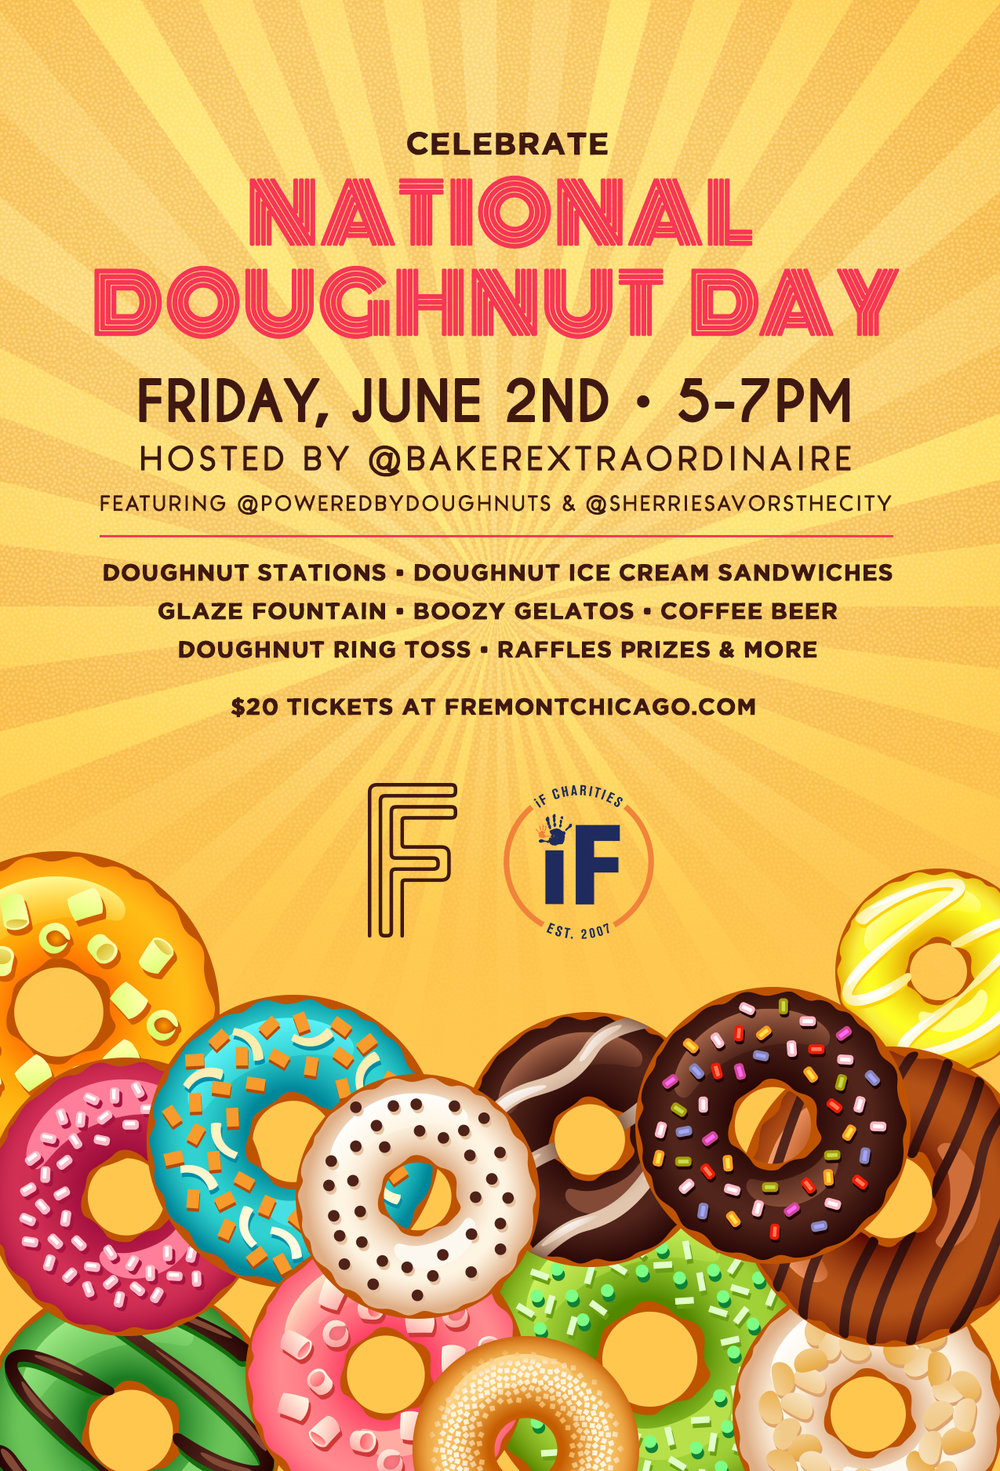 Help iF Charities celebrate National Doughnut Day at Fremont!  - Click here to get your tickets today!